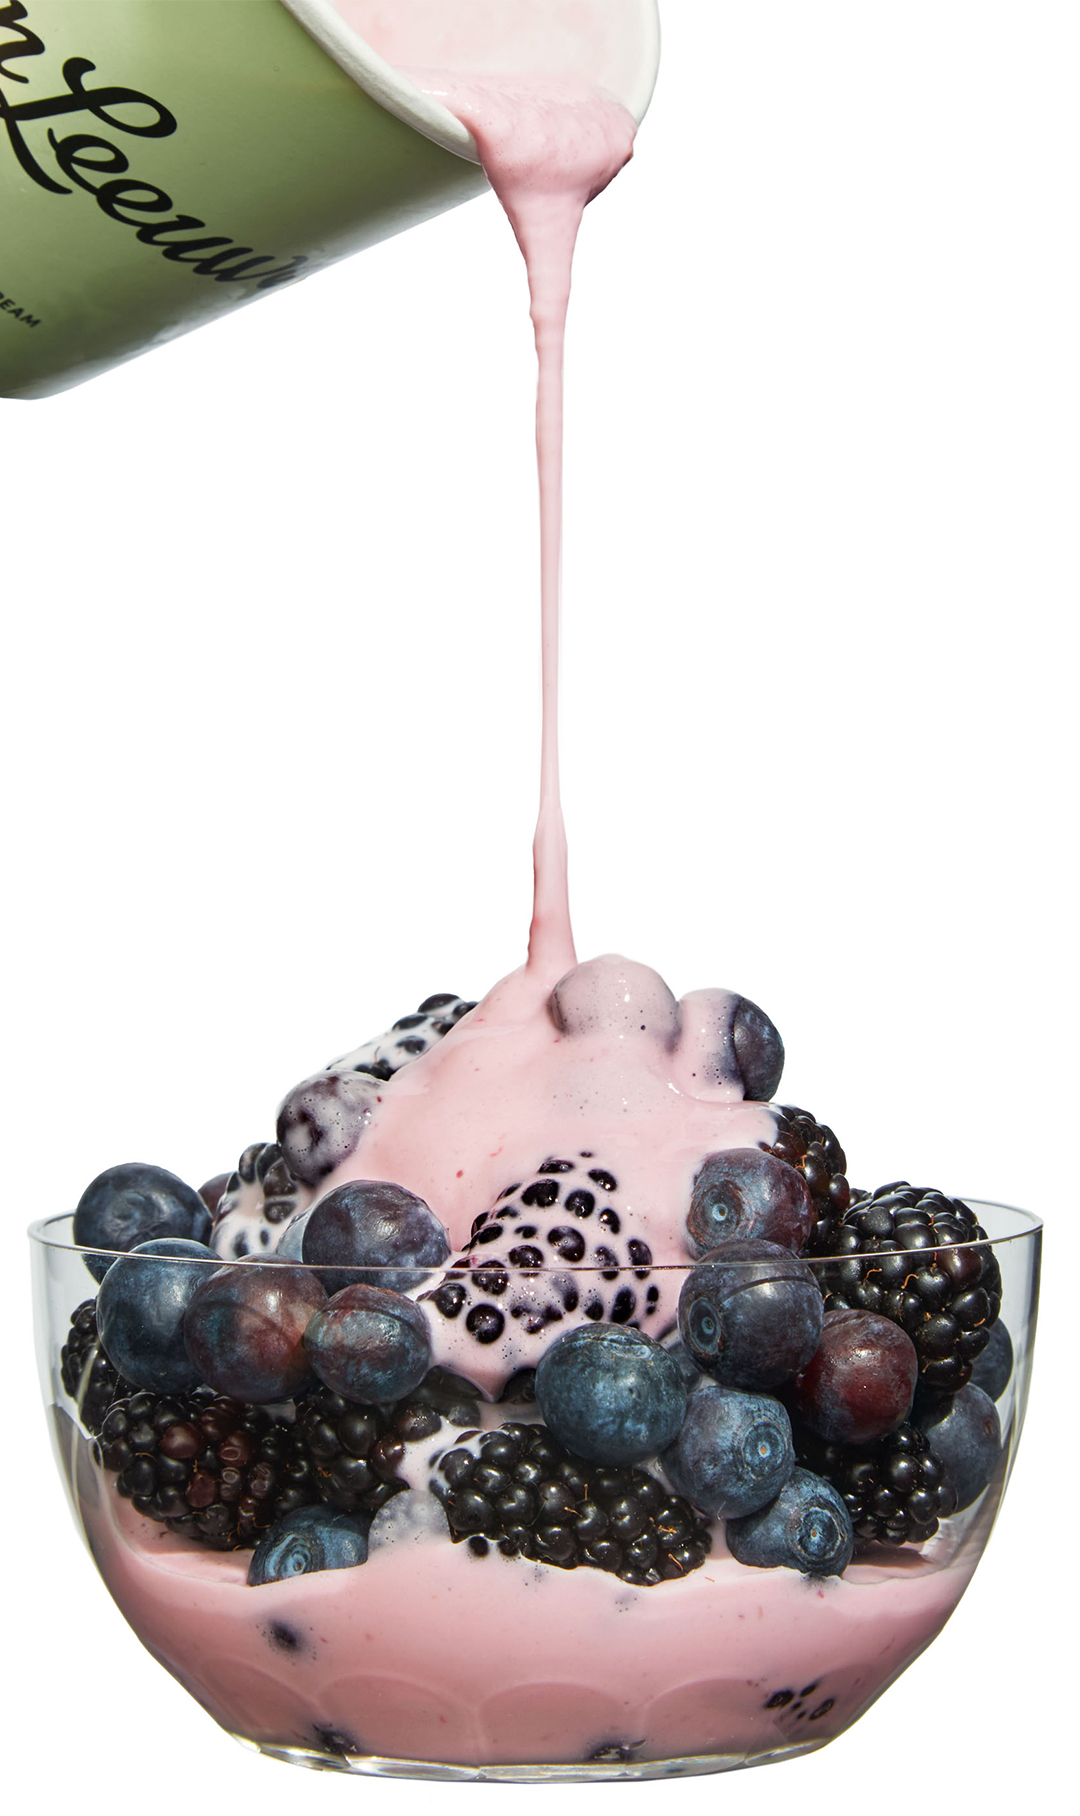 melting ice cream poured over blueberries